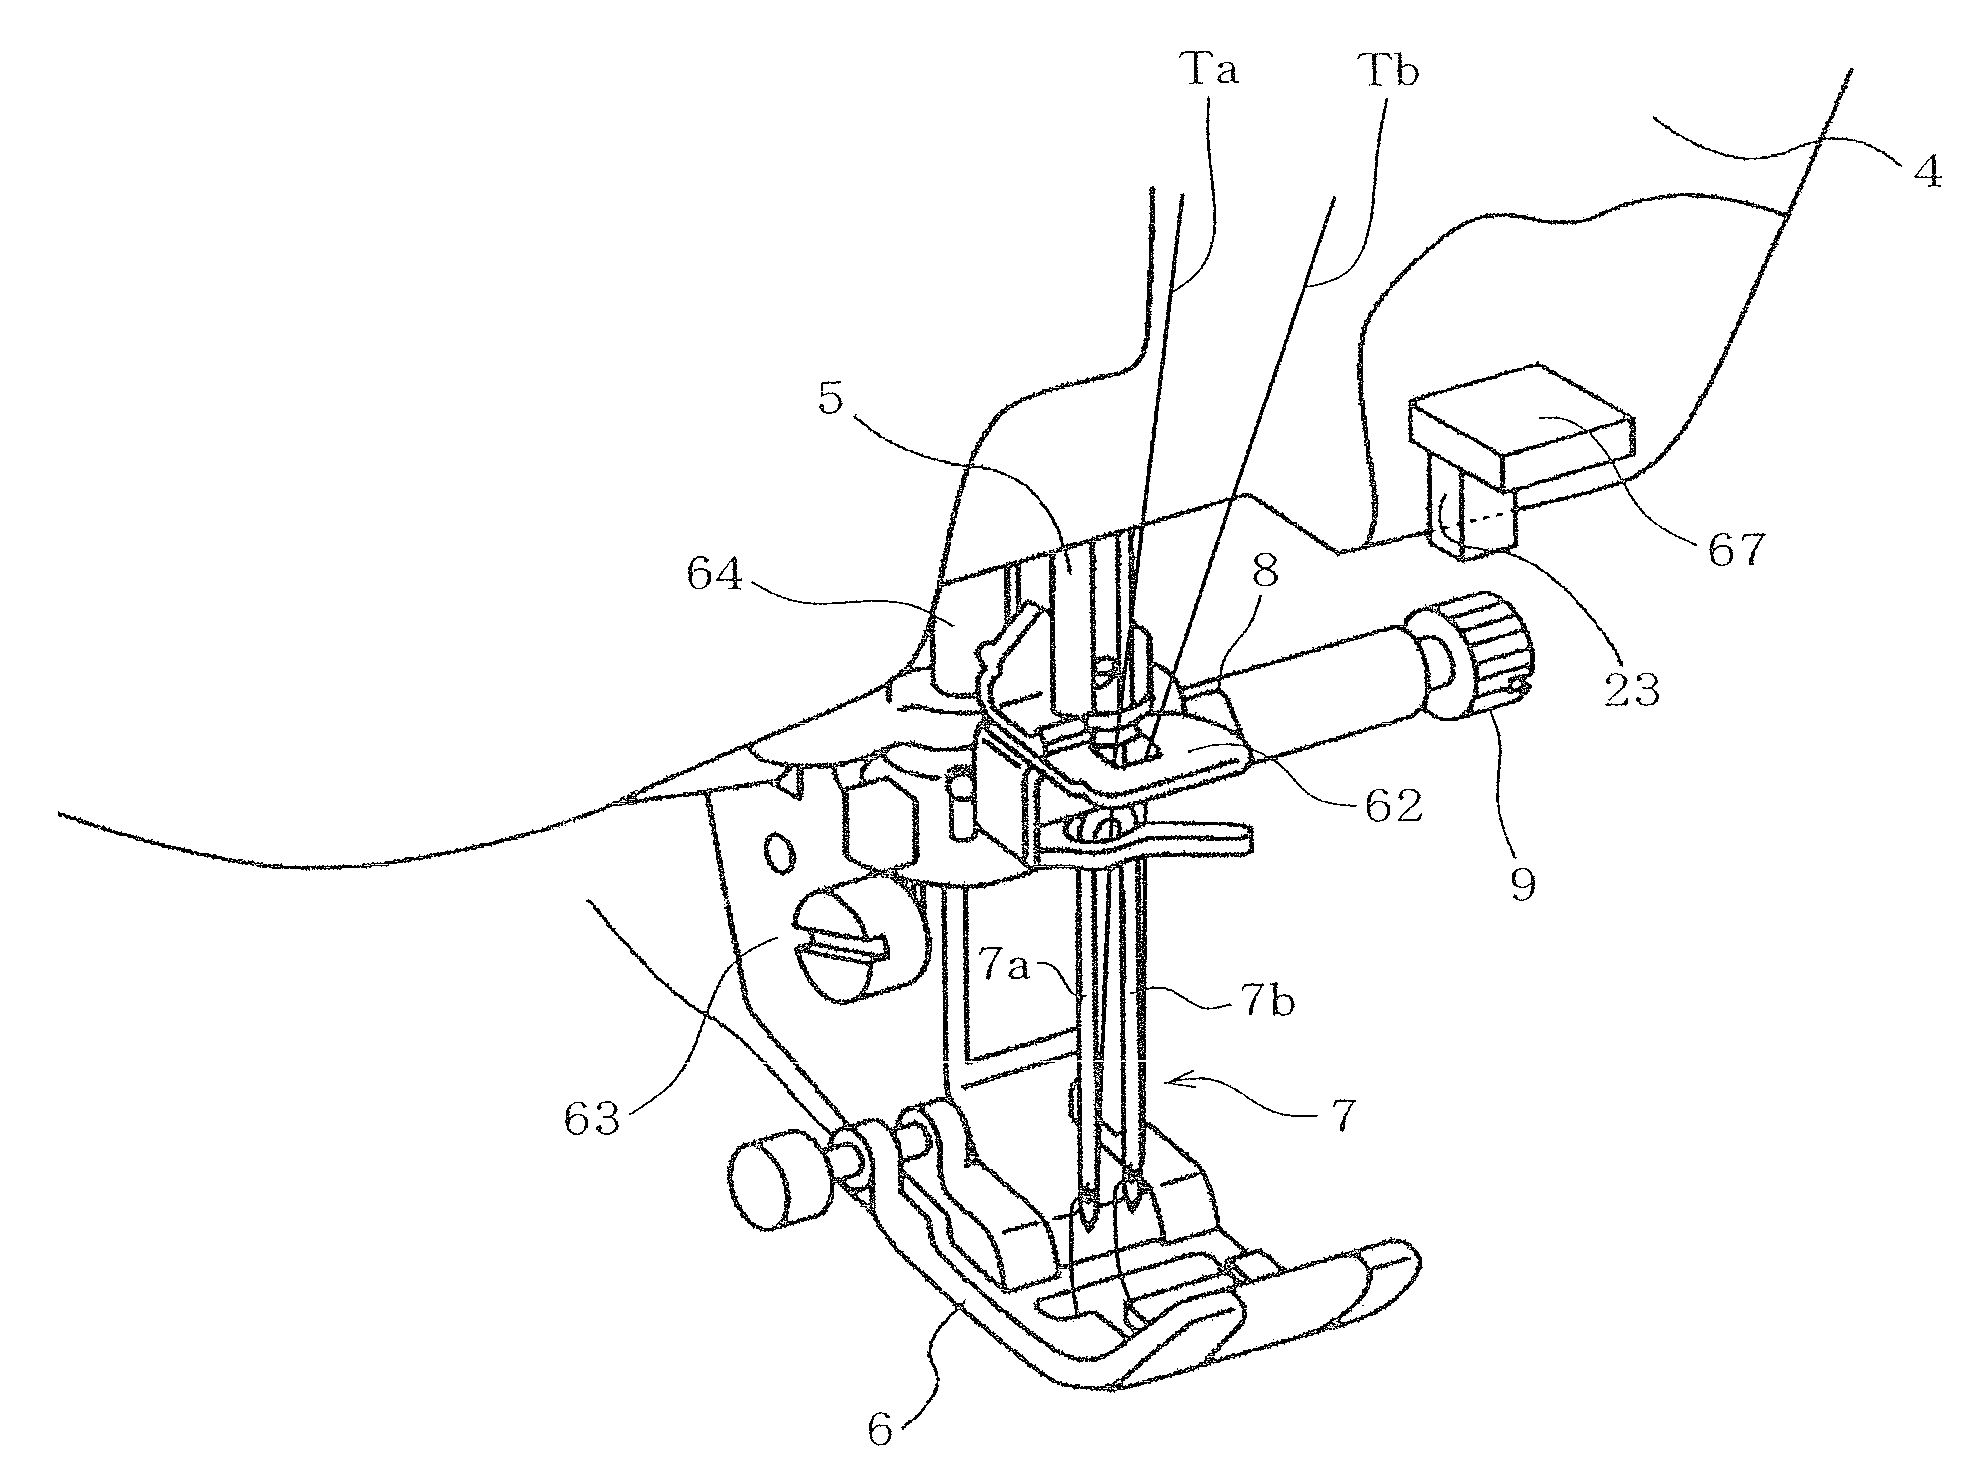 Harness Industrial Sewing Machine